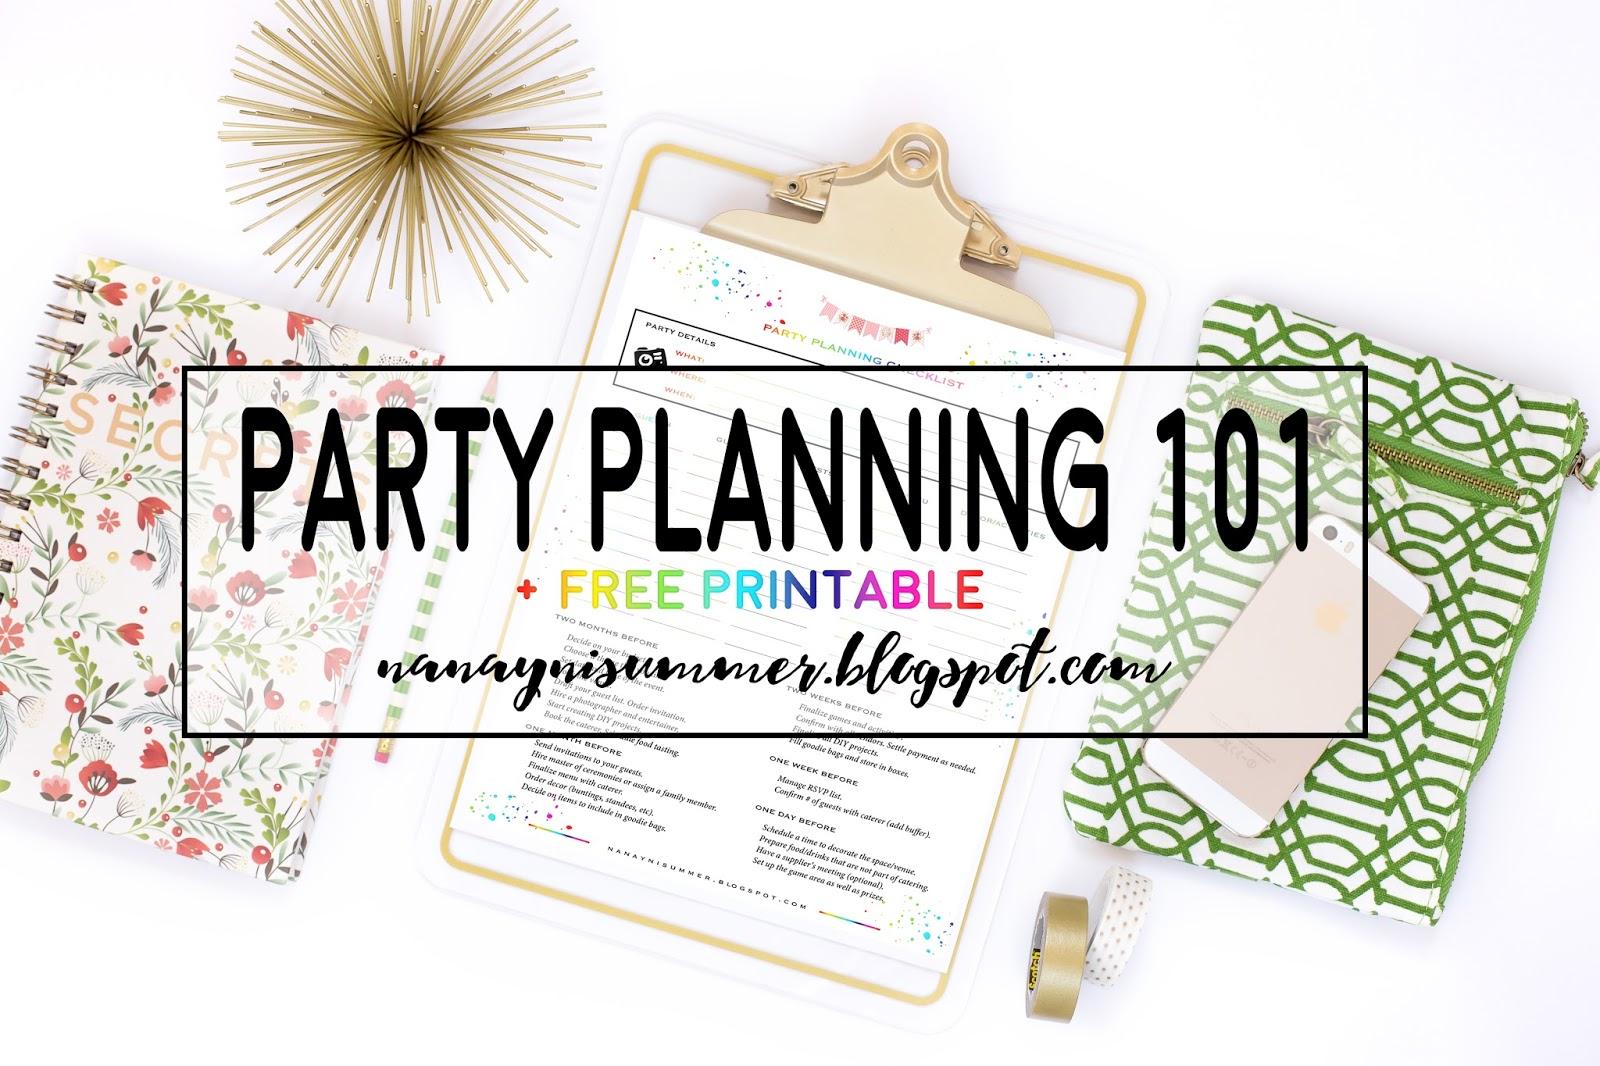 Here S The Party Planning Checklist That I Created Please Feel Free To And Use It Plan Your Parties In Future As Well